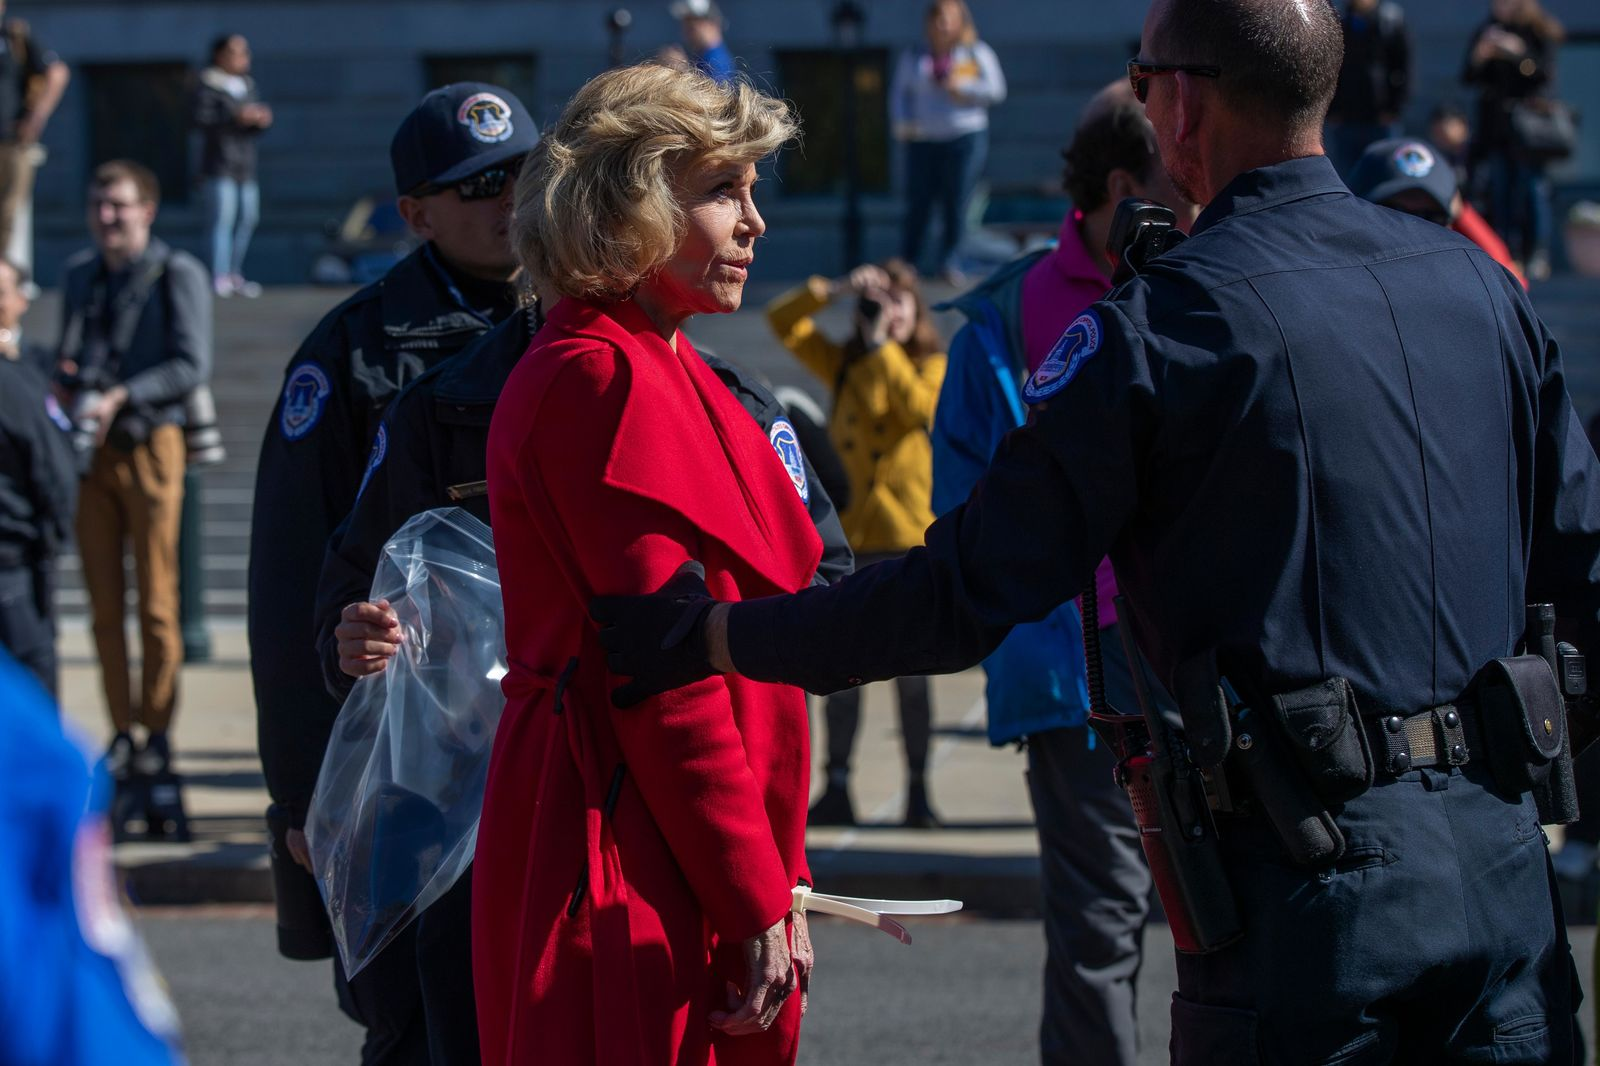 Actress Jane Fonda is arrested by U.S. Capitol Police officers during a rally on Capitol Hill in Washington, Friday, Oct. 18, 2019. A half-century after throwing her attention-getting celebrity status into Vietnam War protests, 81-year-old Jane Fonda is now doing the same in a U.S. climate movement where the average age is 18. (AP Photo/Manuel Balce Ceneta)